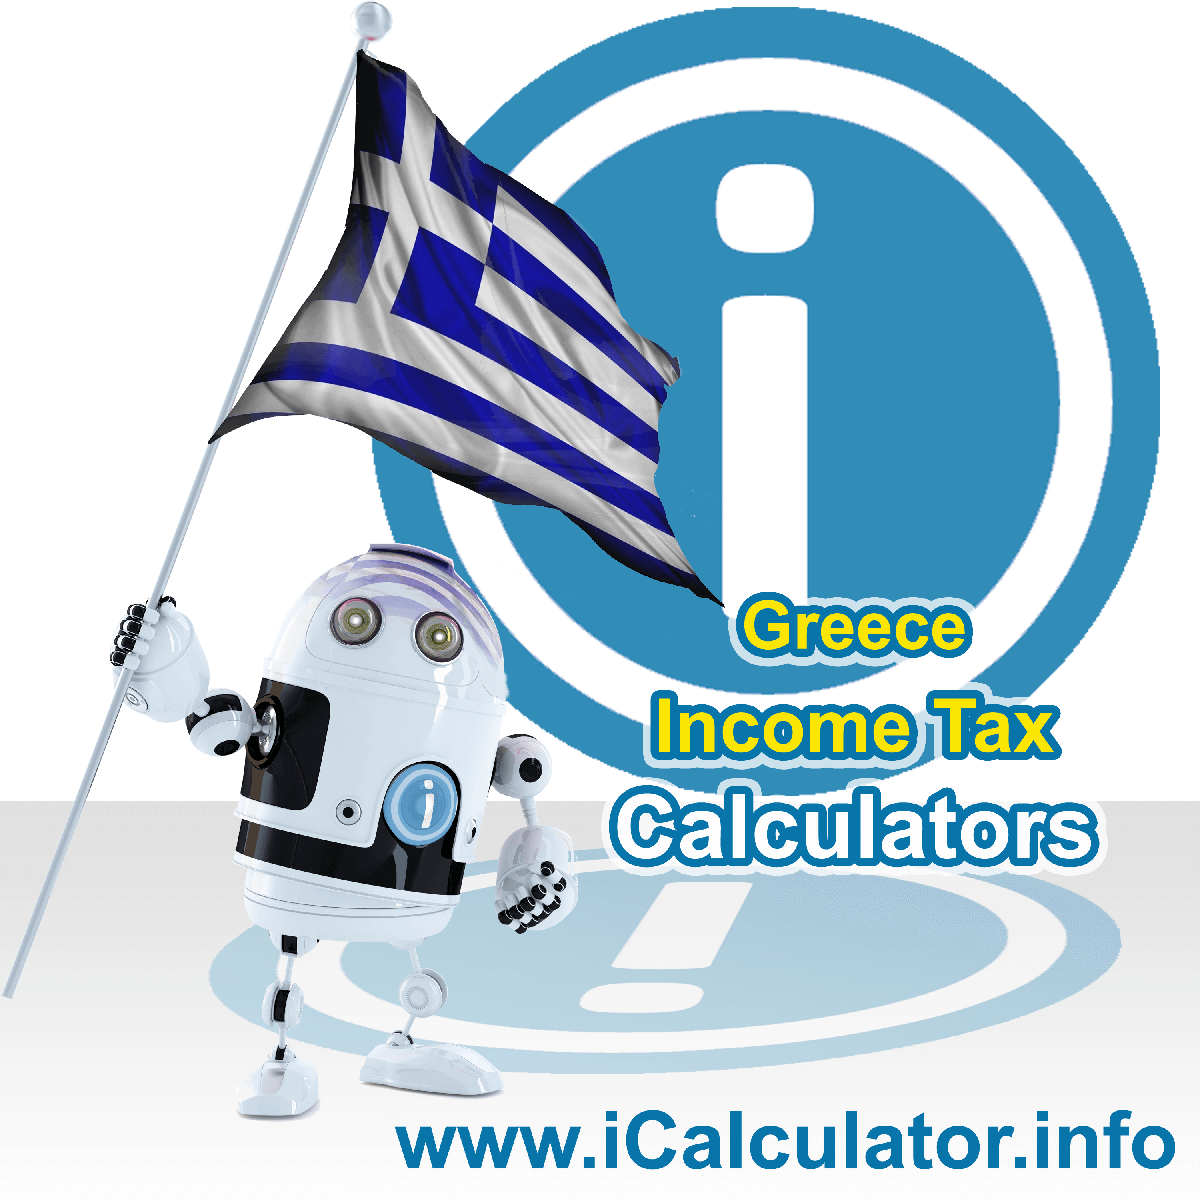 Greece Income Tax Calculator. This image shows a new employer in Greece calculating the annual payroll costs based on multiple payroll payments in one year in Greece using the Greece income tax calculator to understand their payroll costs in Greece in 2020